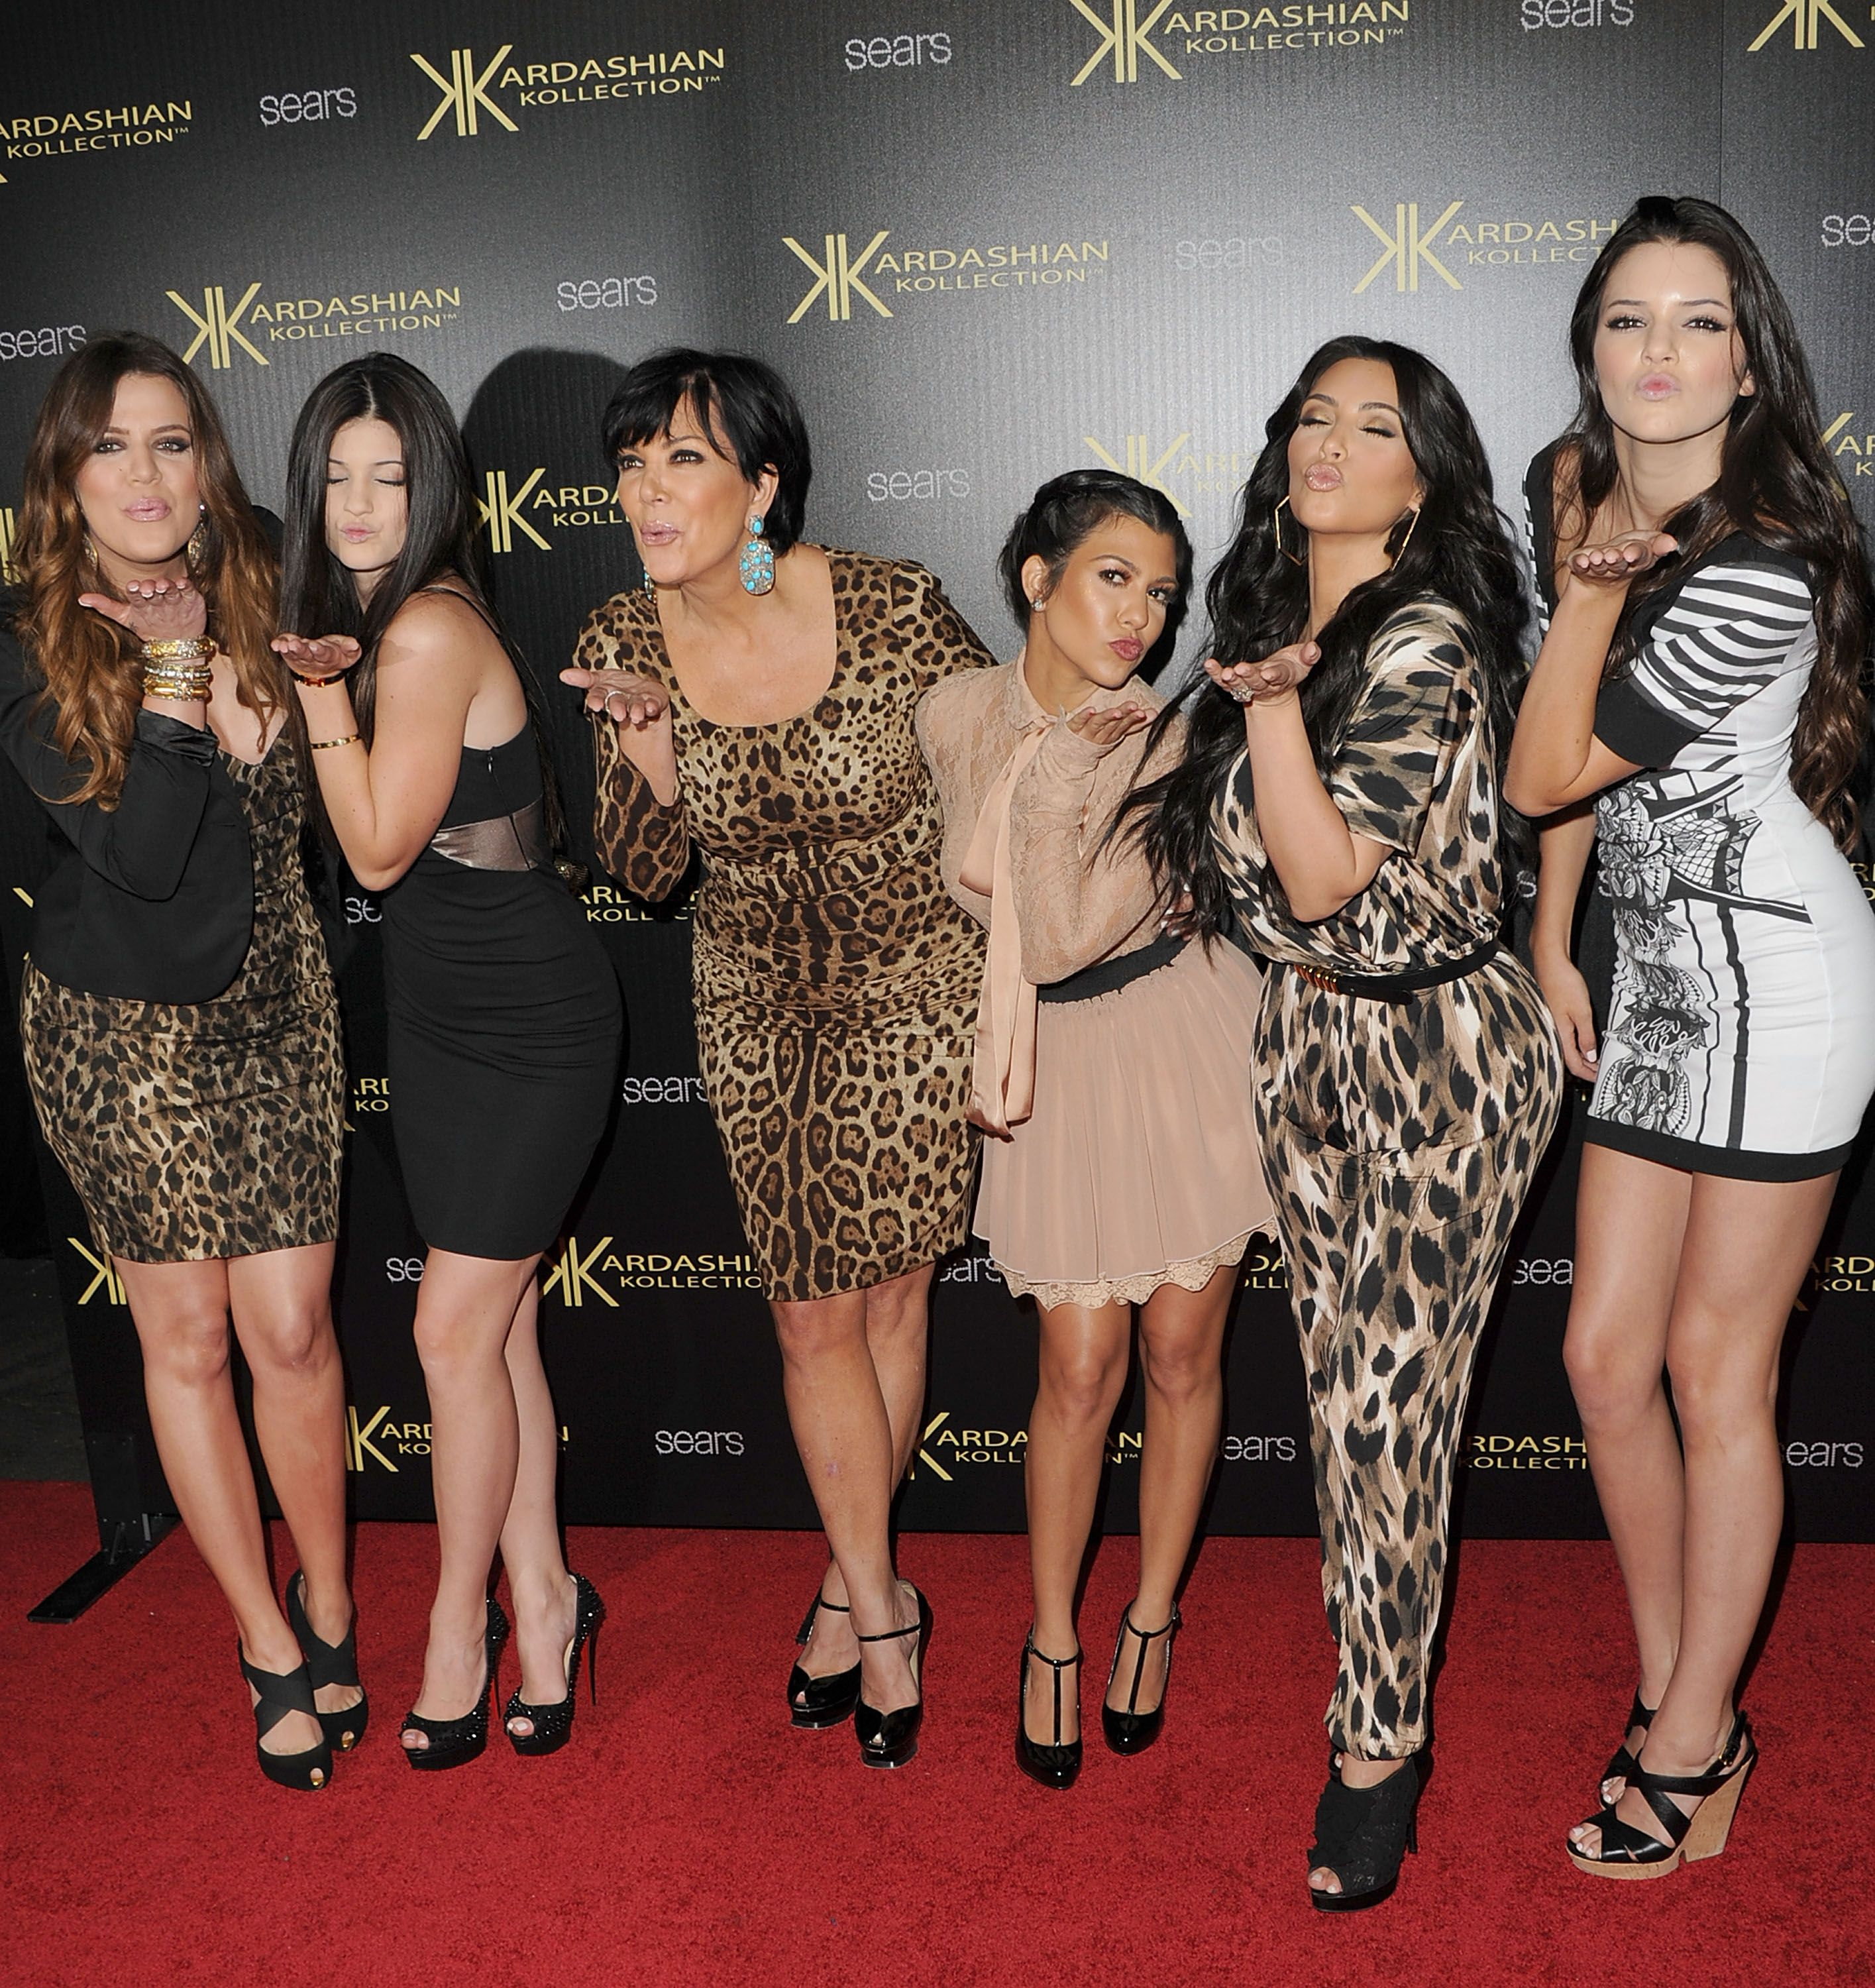 Kardashians Hulu Show: Everything You Need To Know, From The Trailer To Release Date